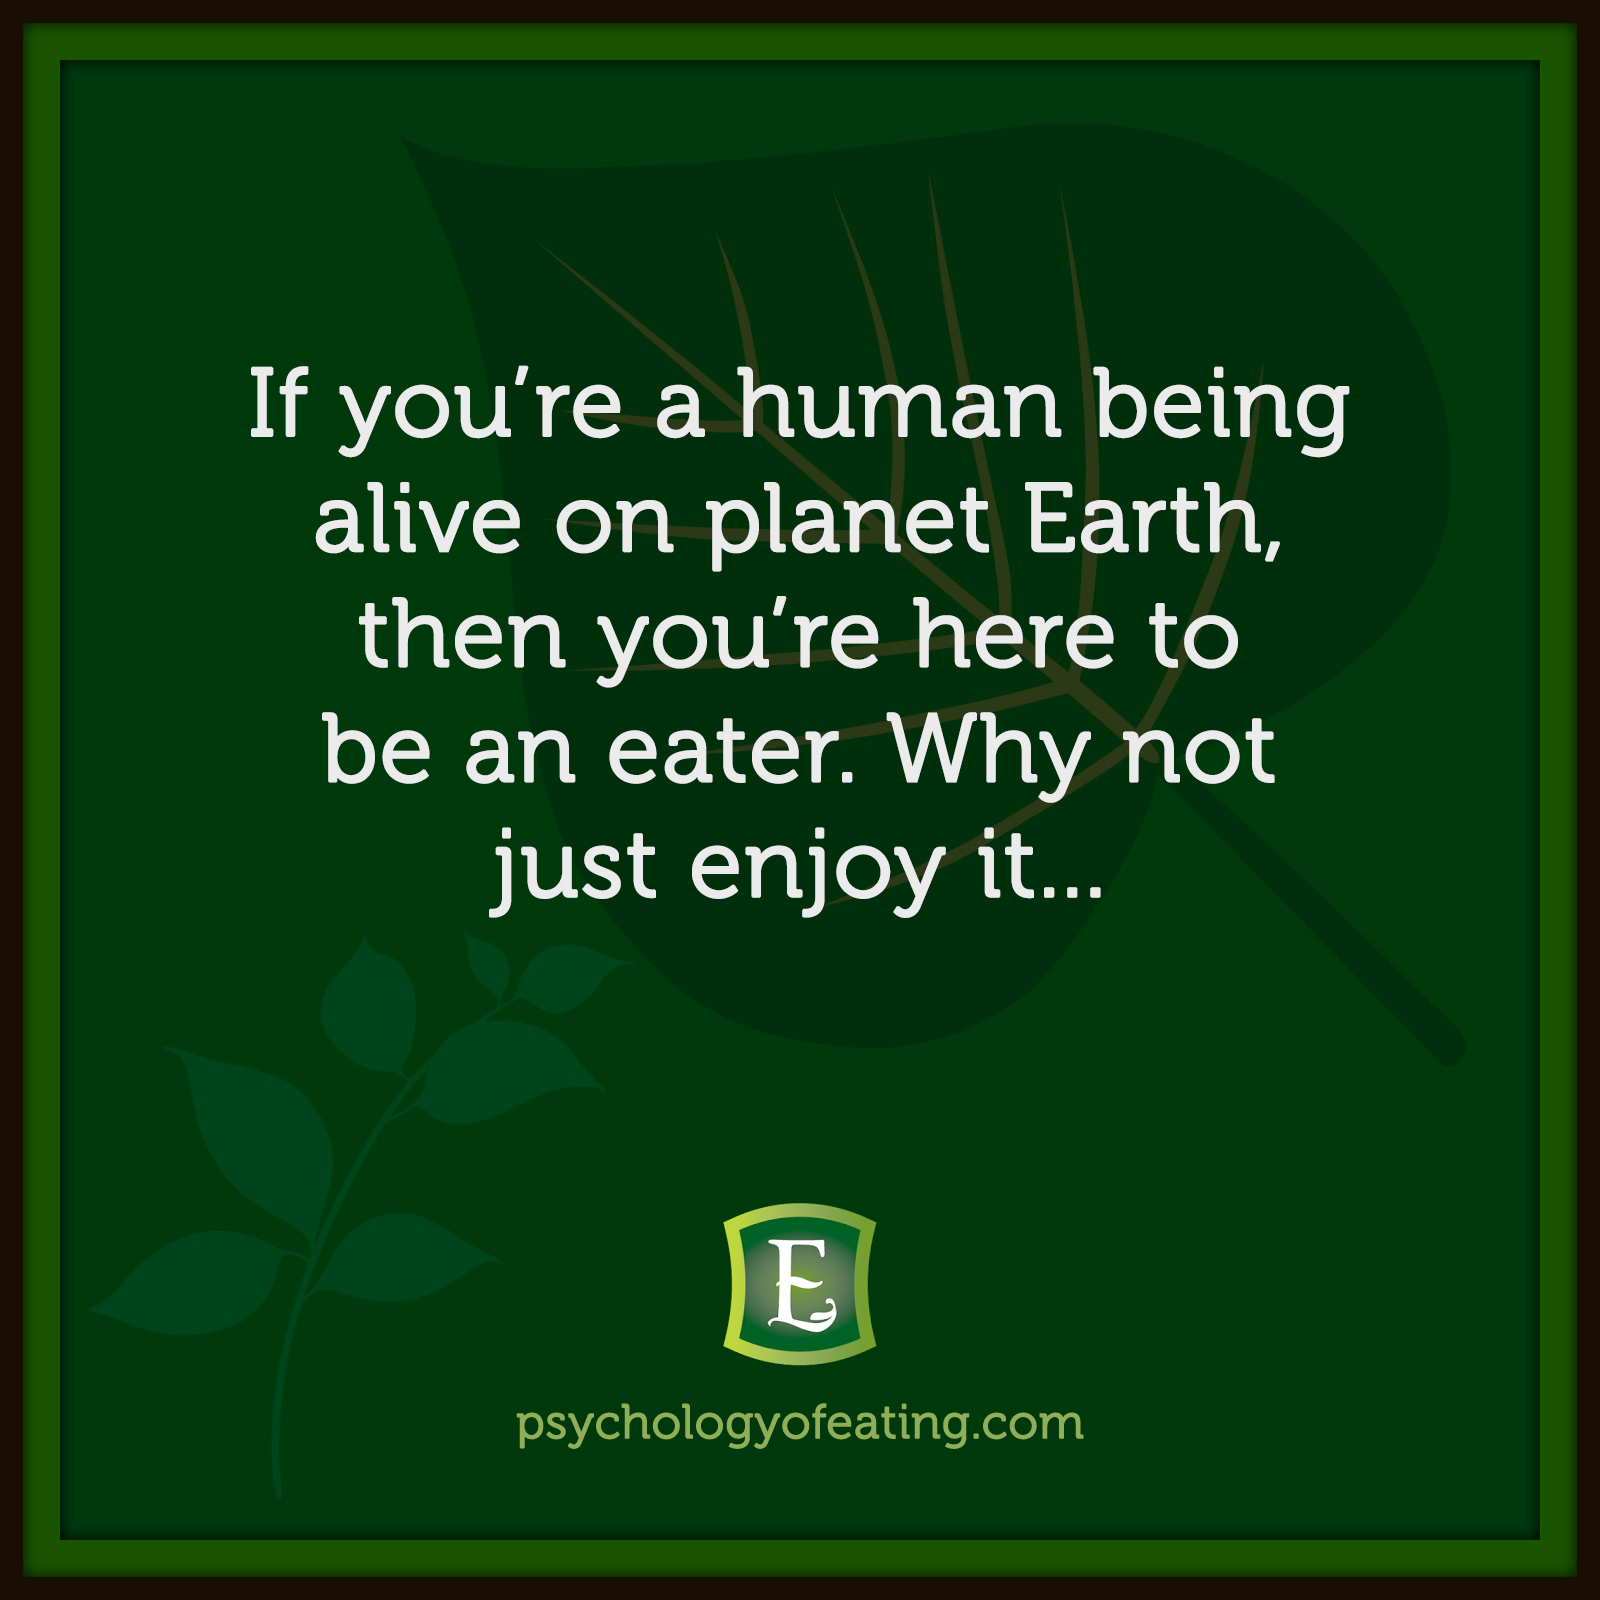 If you're a human being alive on planet Earth, then you're here to be an eater. Why not just enjoy it… #health #nutrition #eatingpsychology #IPE